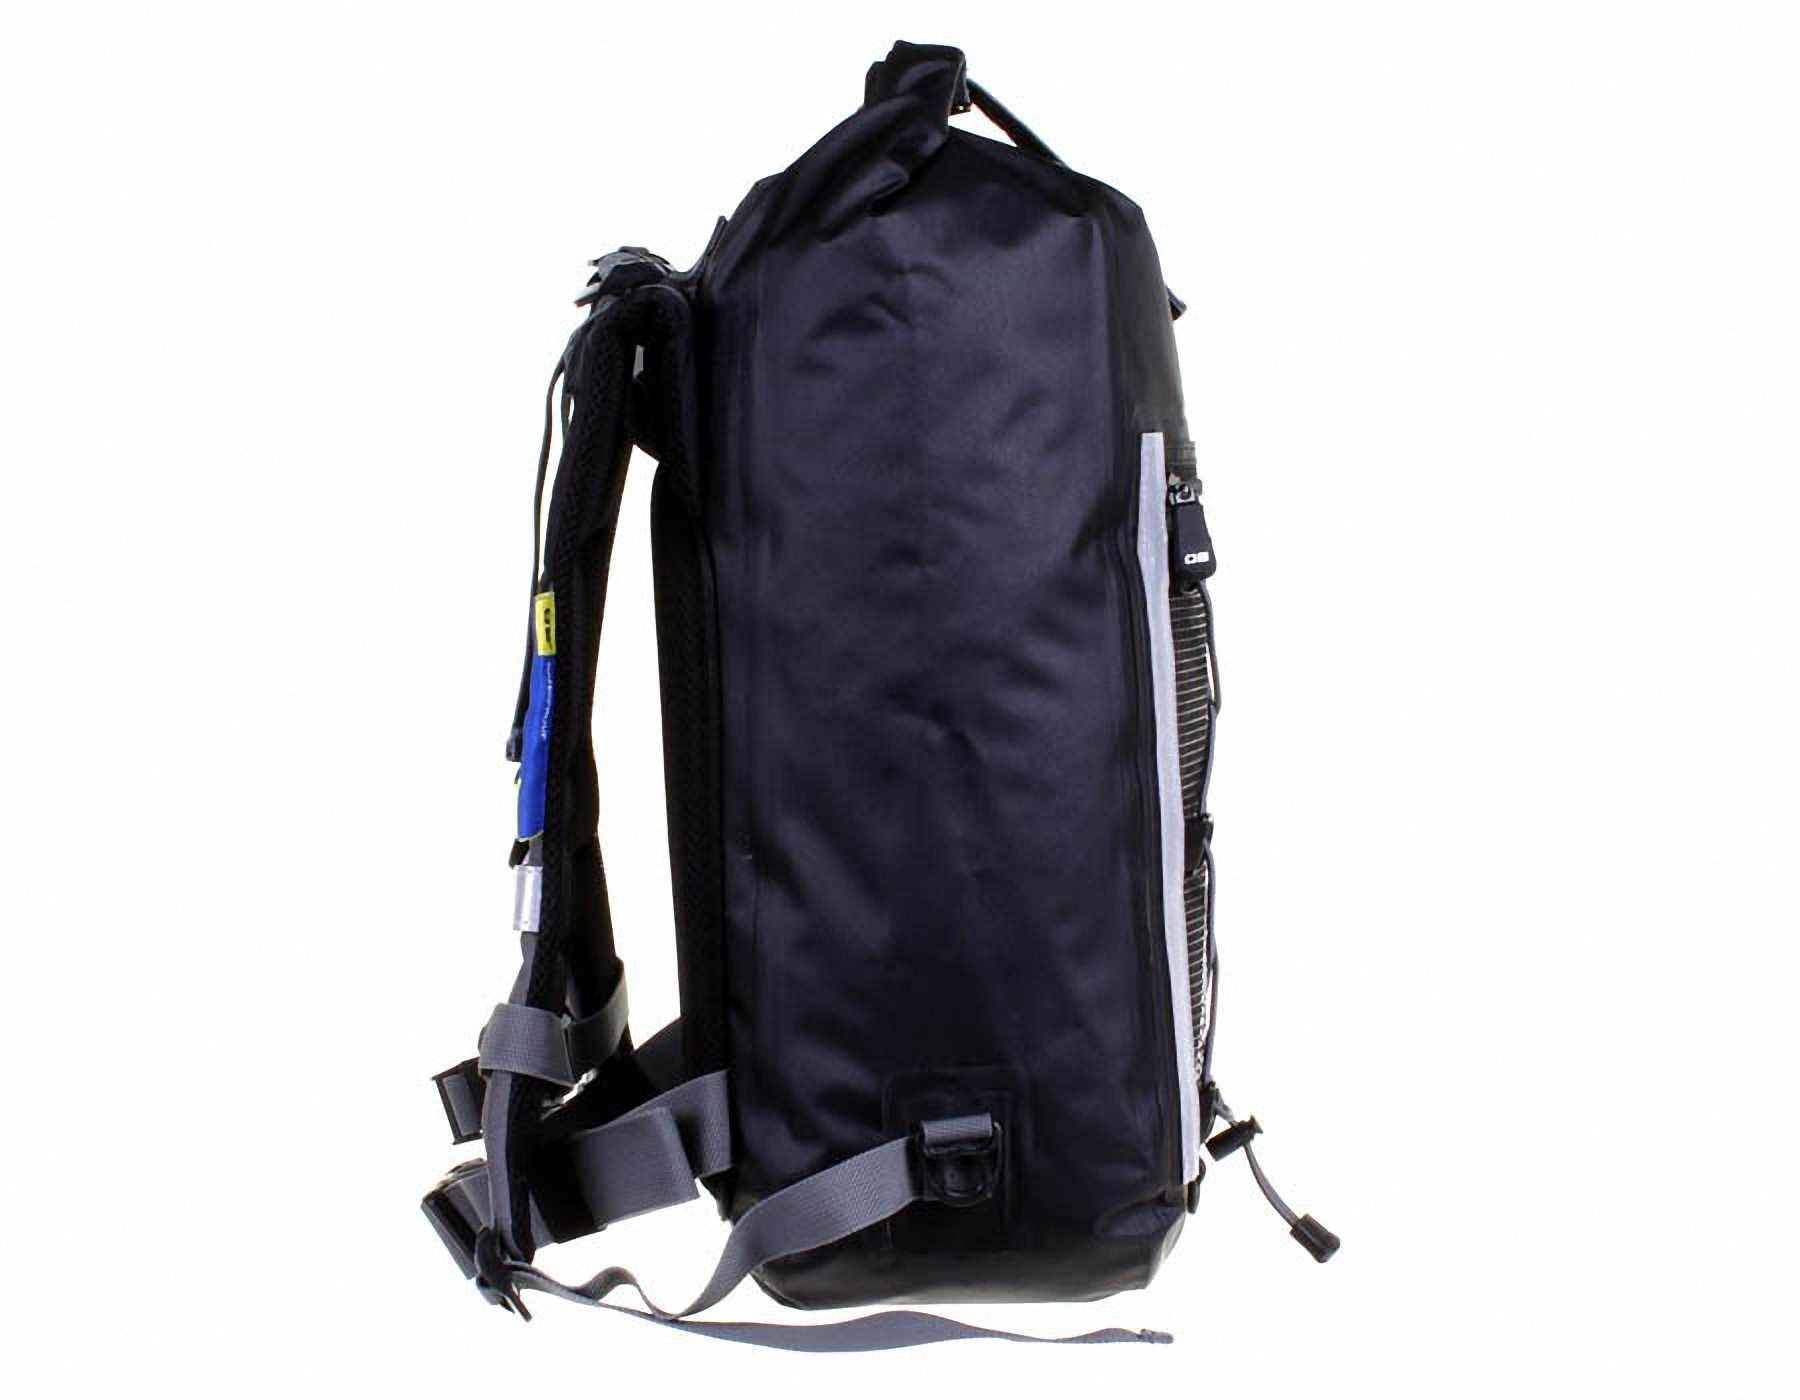 Водонепроницаемый рюкзак OverBoard OB1135BLK - Ultra-light Pro-Sports Waterproof Backpack - 20L. Фото 3